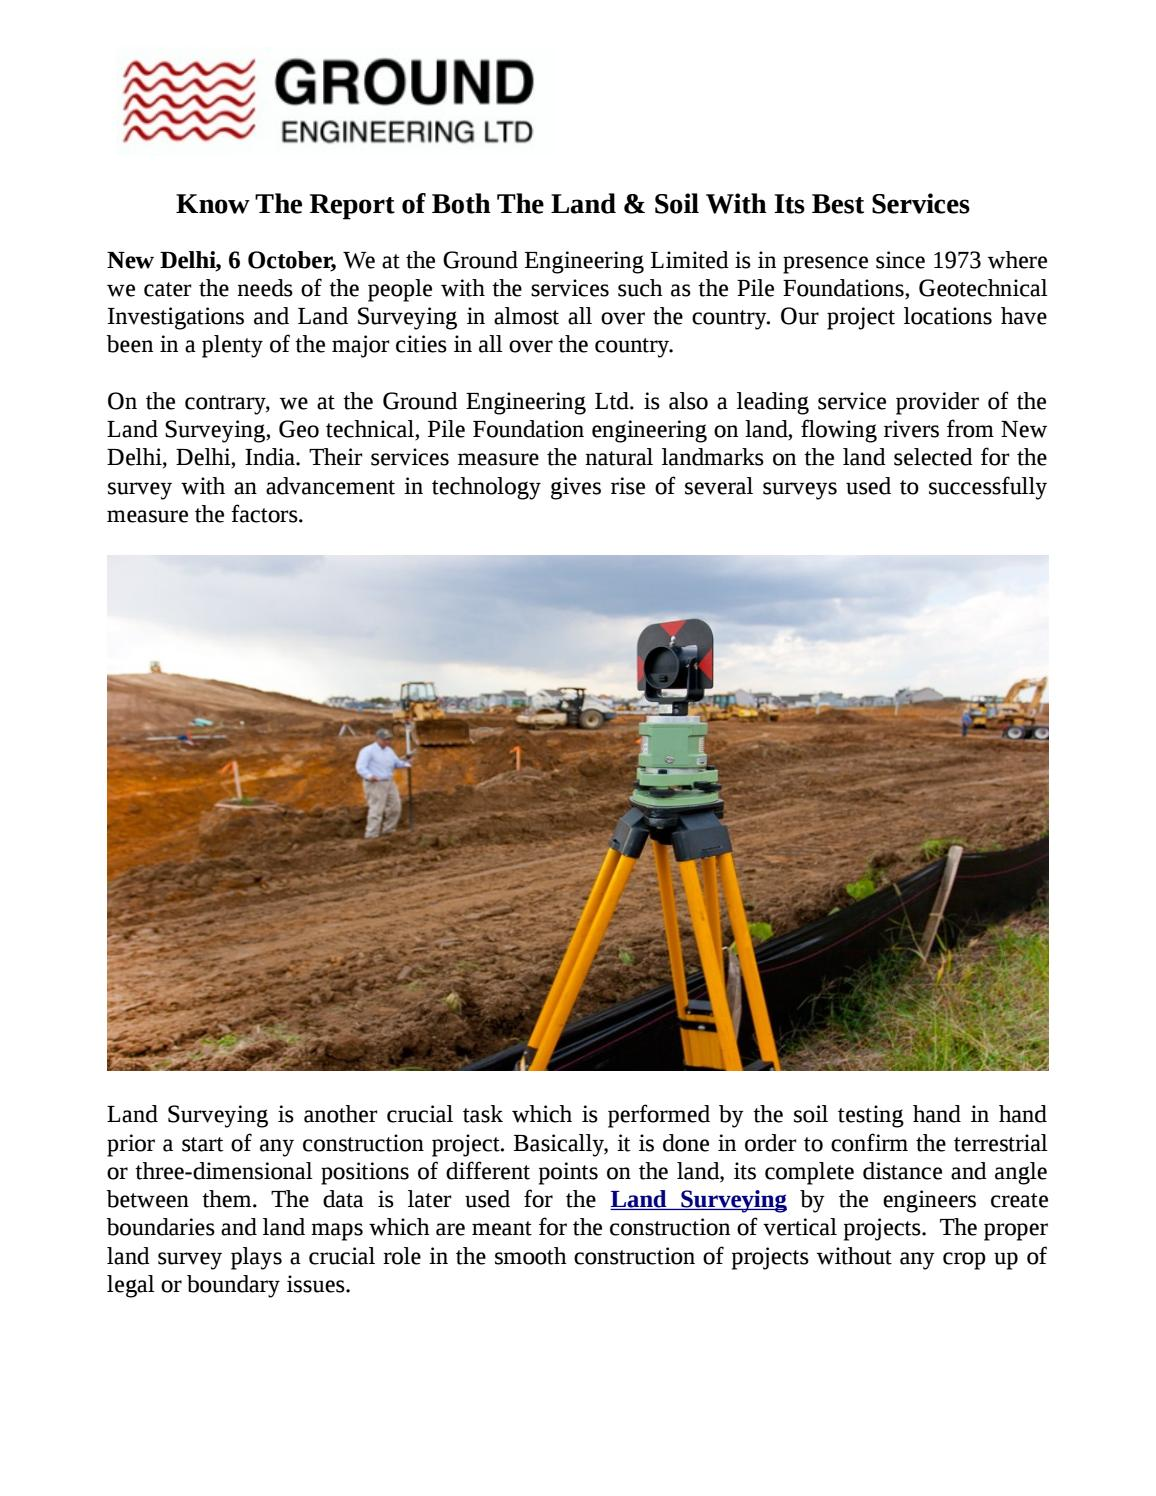 Know The Report of Both The Land & Soil With Its Best Services by